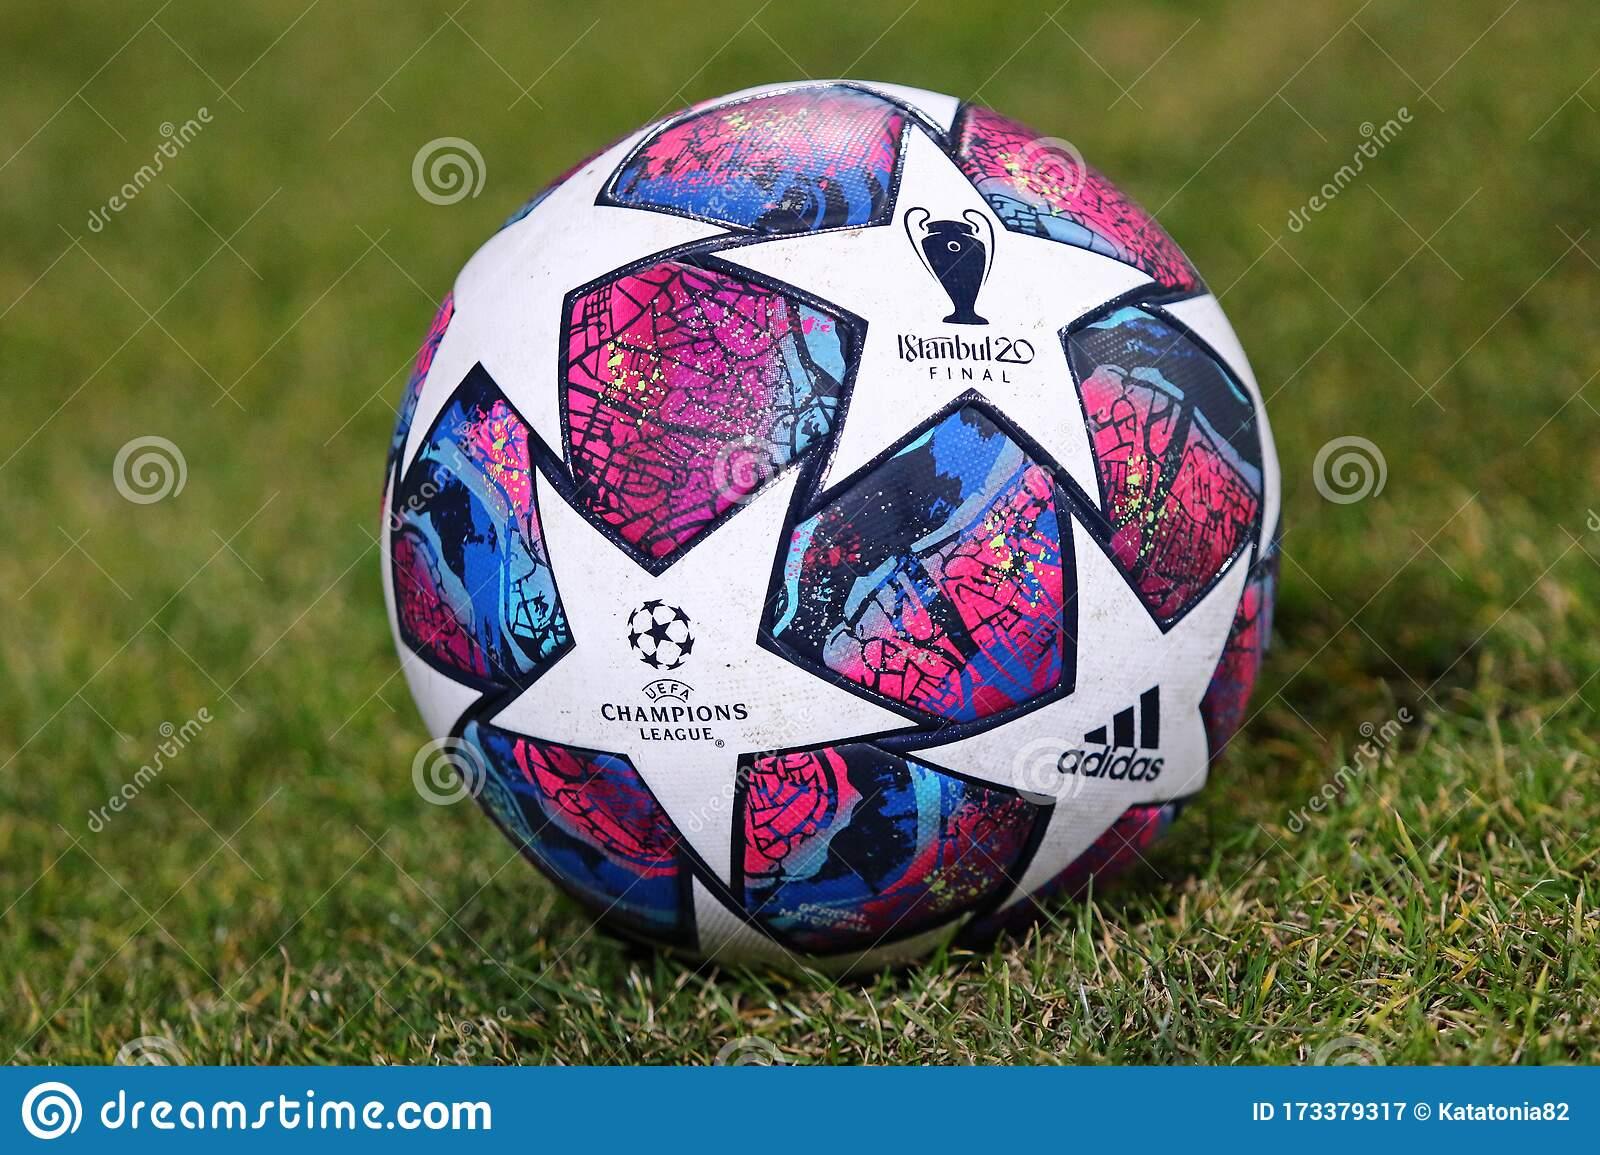 official match ball of uefa champions league 2020 istanbul final editorial photography image of arena design 173379317 https www dreamstime com official match ball uefa champions league istanbul final kyiv ukraine february grass youth game fc dynamo v image173379317